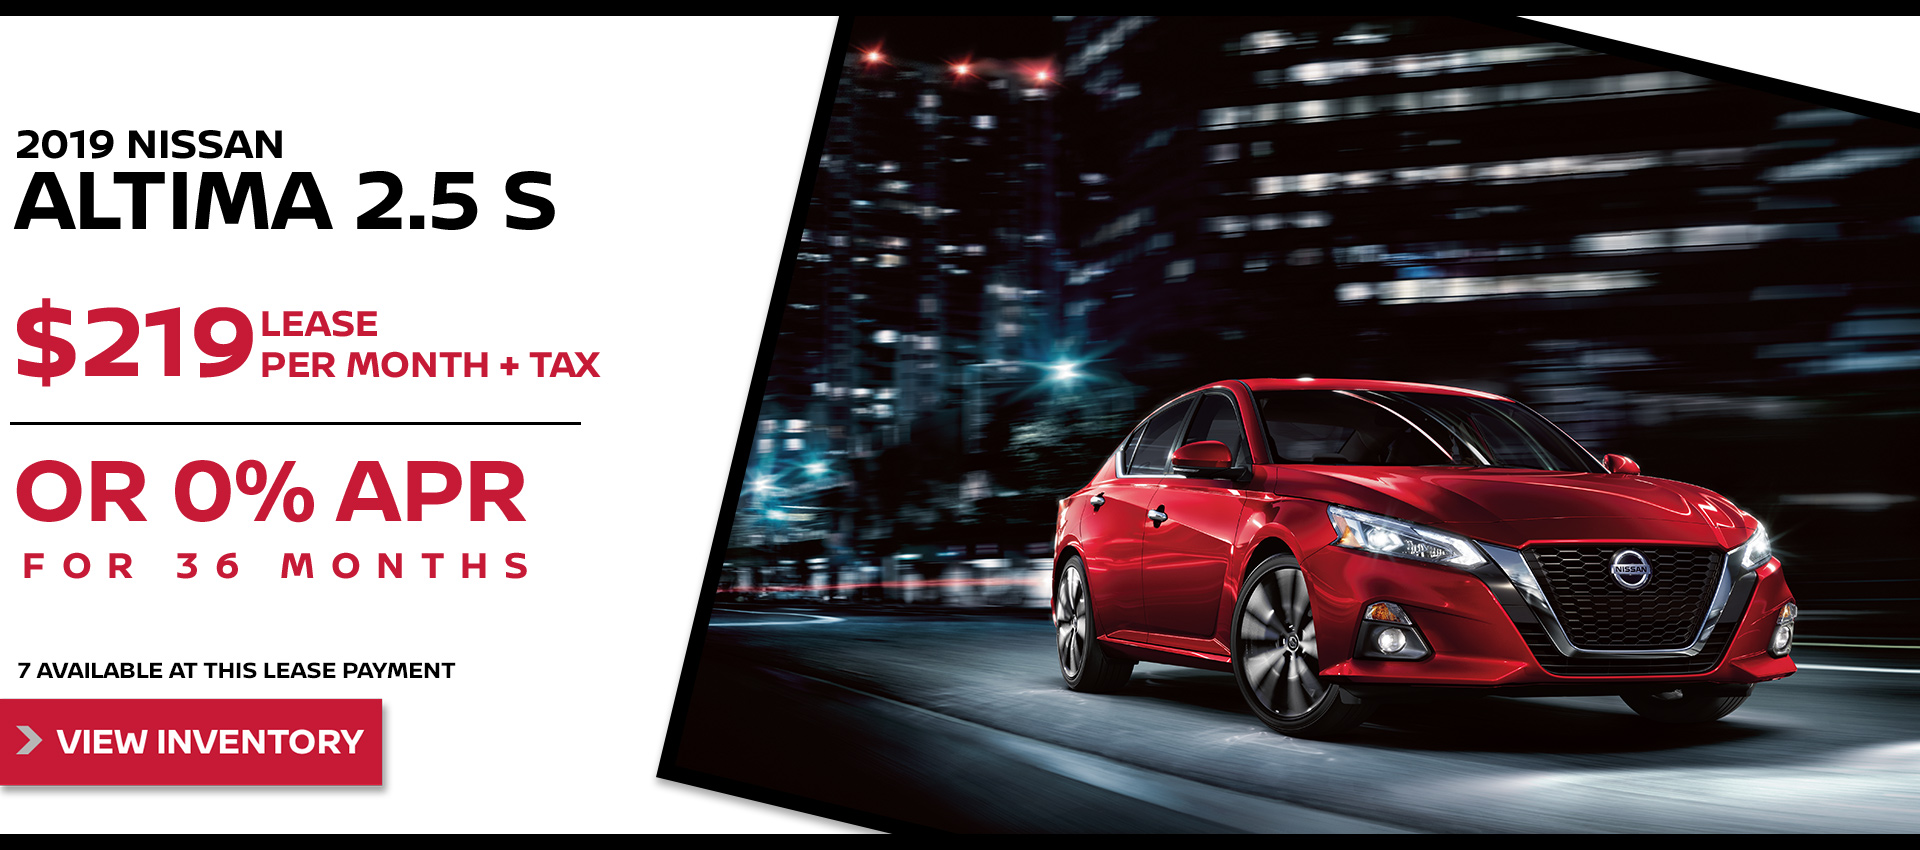 Mossy Nissan - Nissan Altima $219 Lease HP